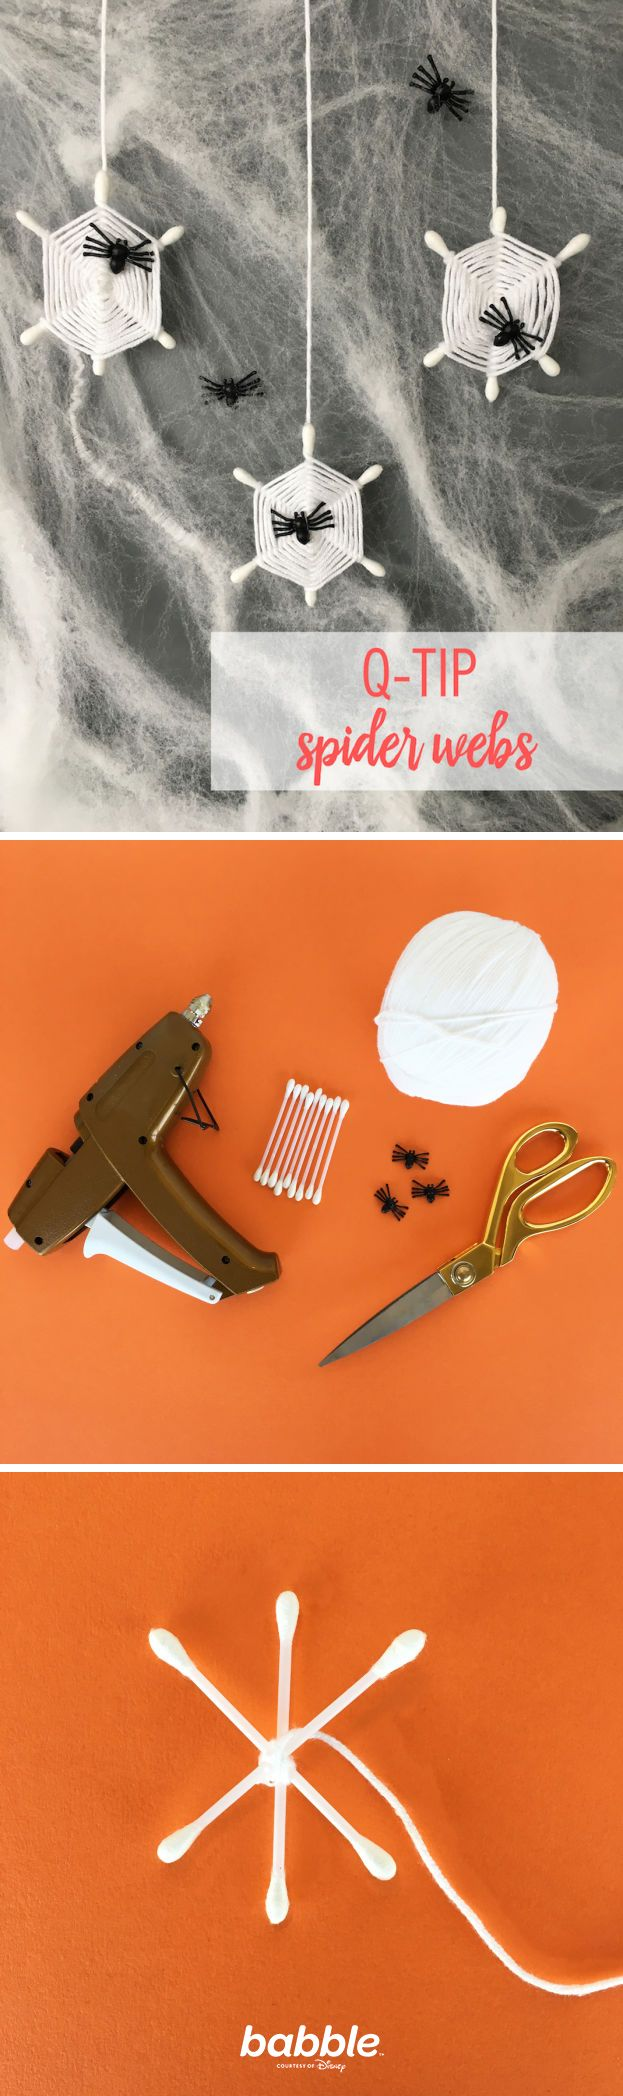 Make some simple, yet spooky Halloween decor this year with Q-tip Spider  Webs